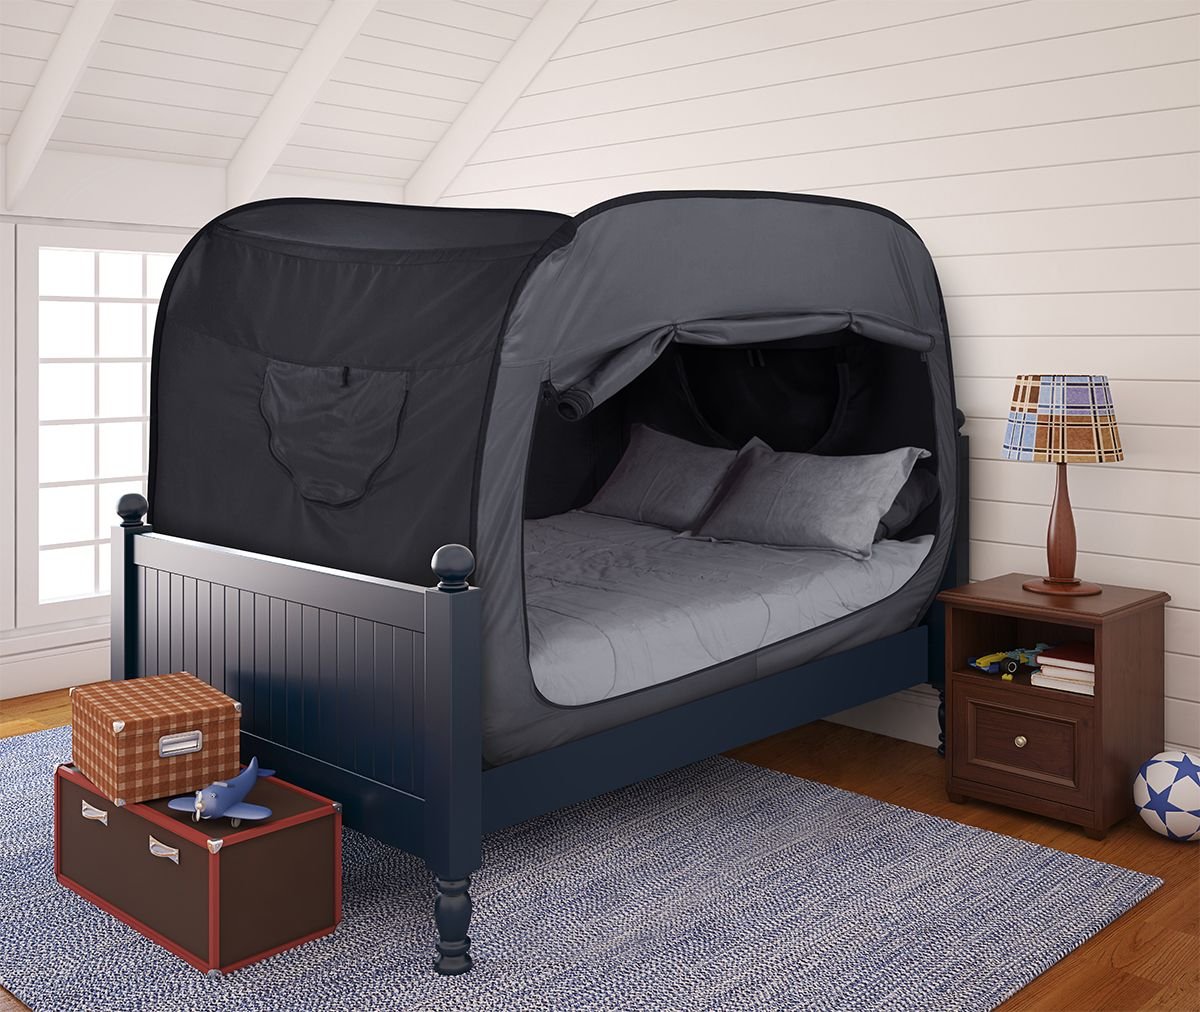 The Bed Tent for Better Sleep Naps! Pinterest Tents